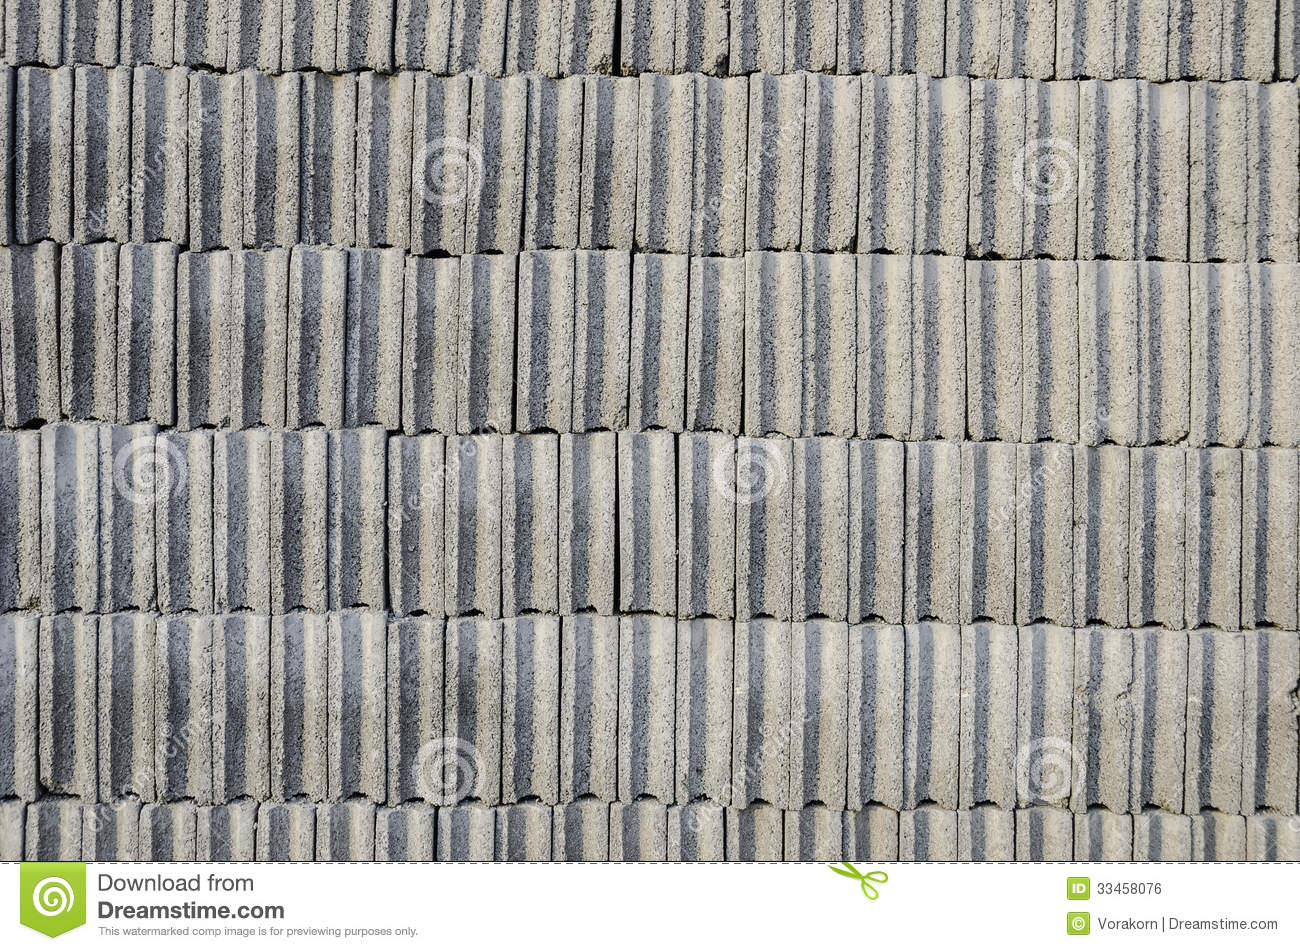 Cement Block Vertical Stacking Royalty Free Stock Image - Image ...: dreamstime.com/royalty-free-stock-image-cement-block-vertical...